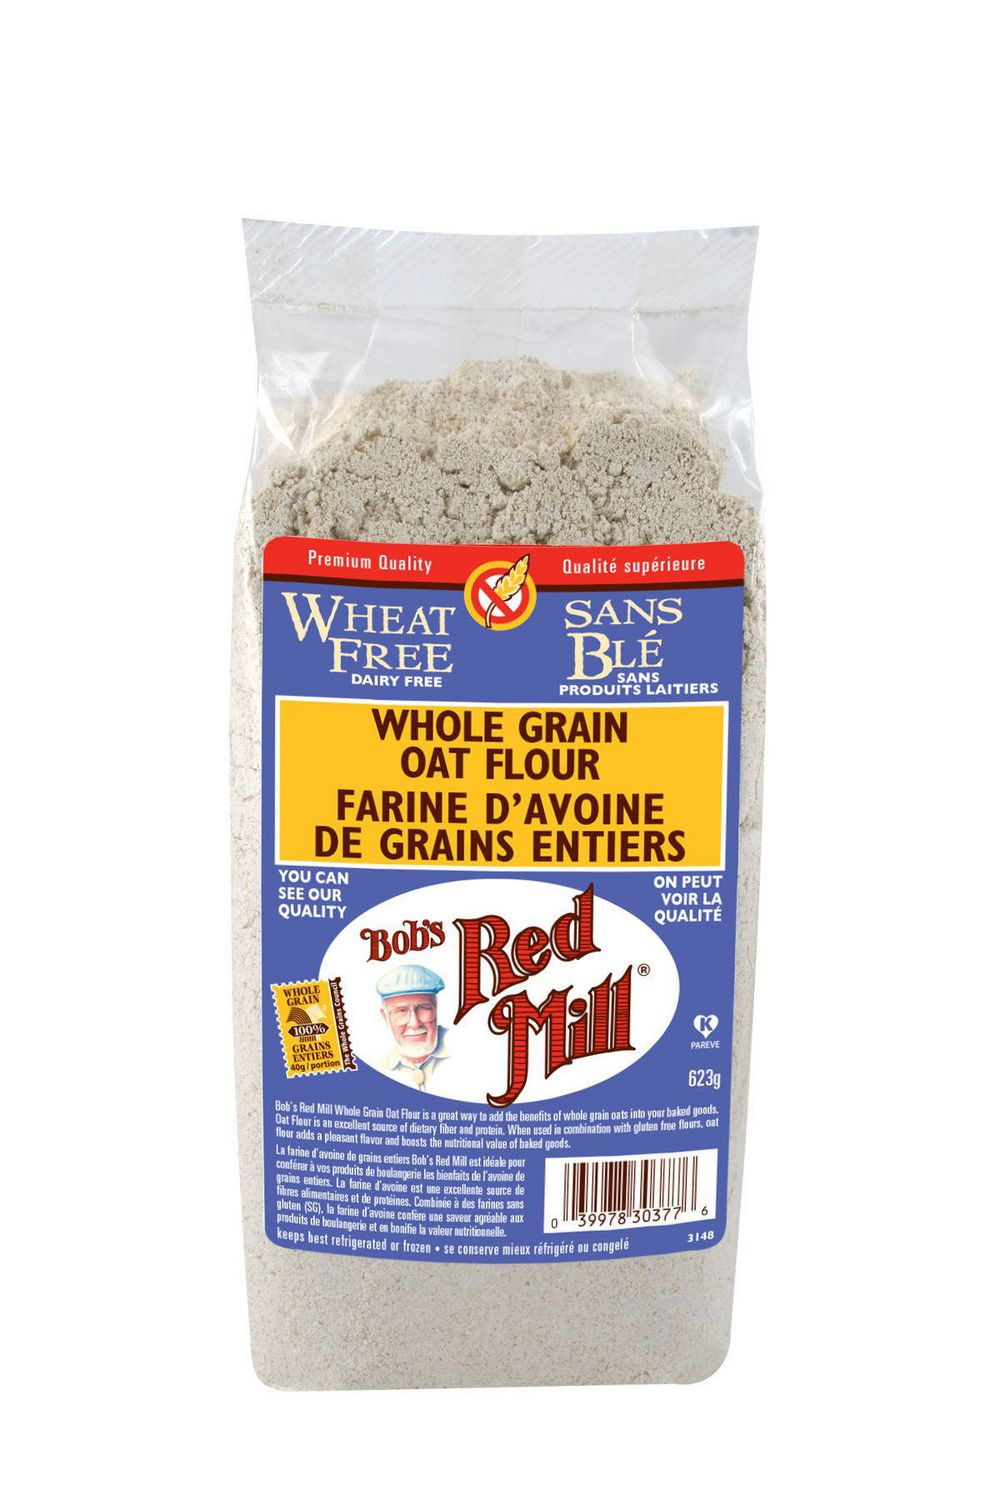 Farine d'avoine de grains entiers - Bob's Red Mill